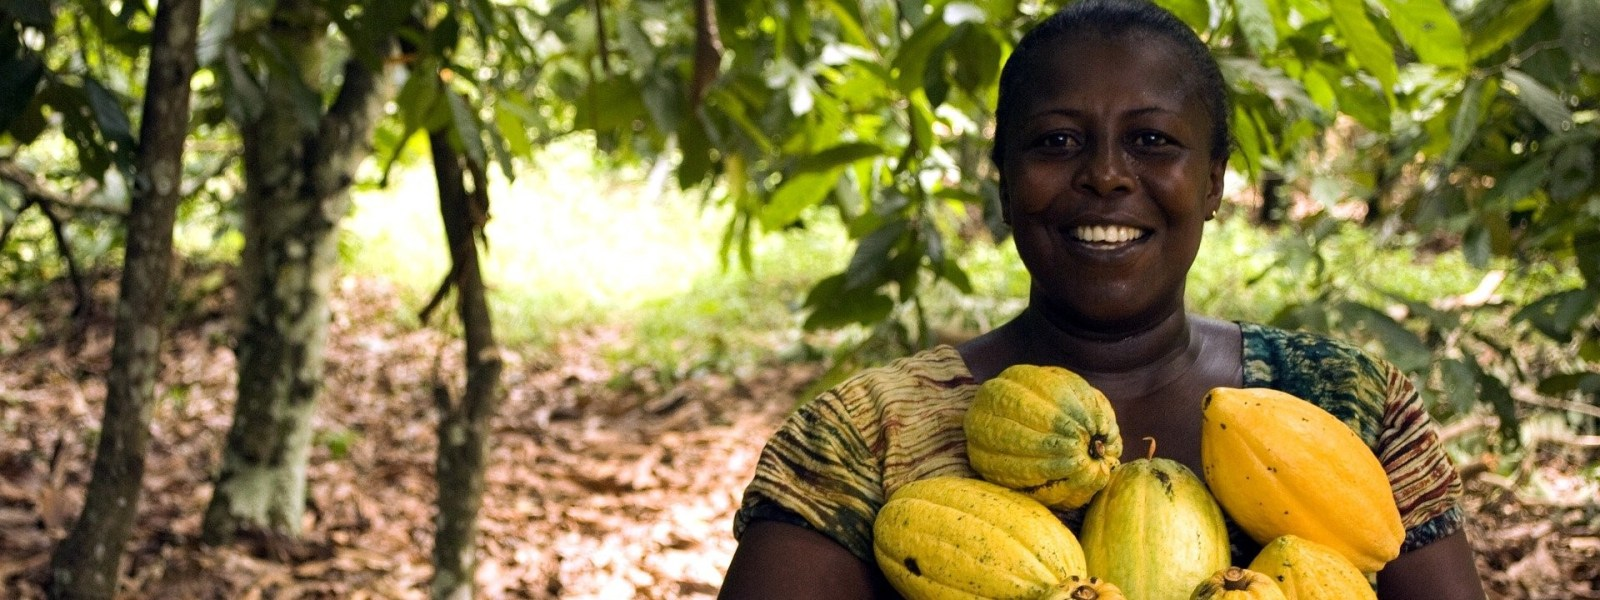 Female farmer smiling while holding a bunch of cocoa fruits